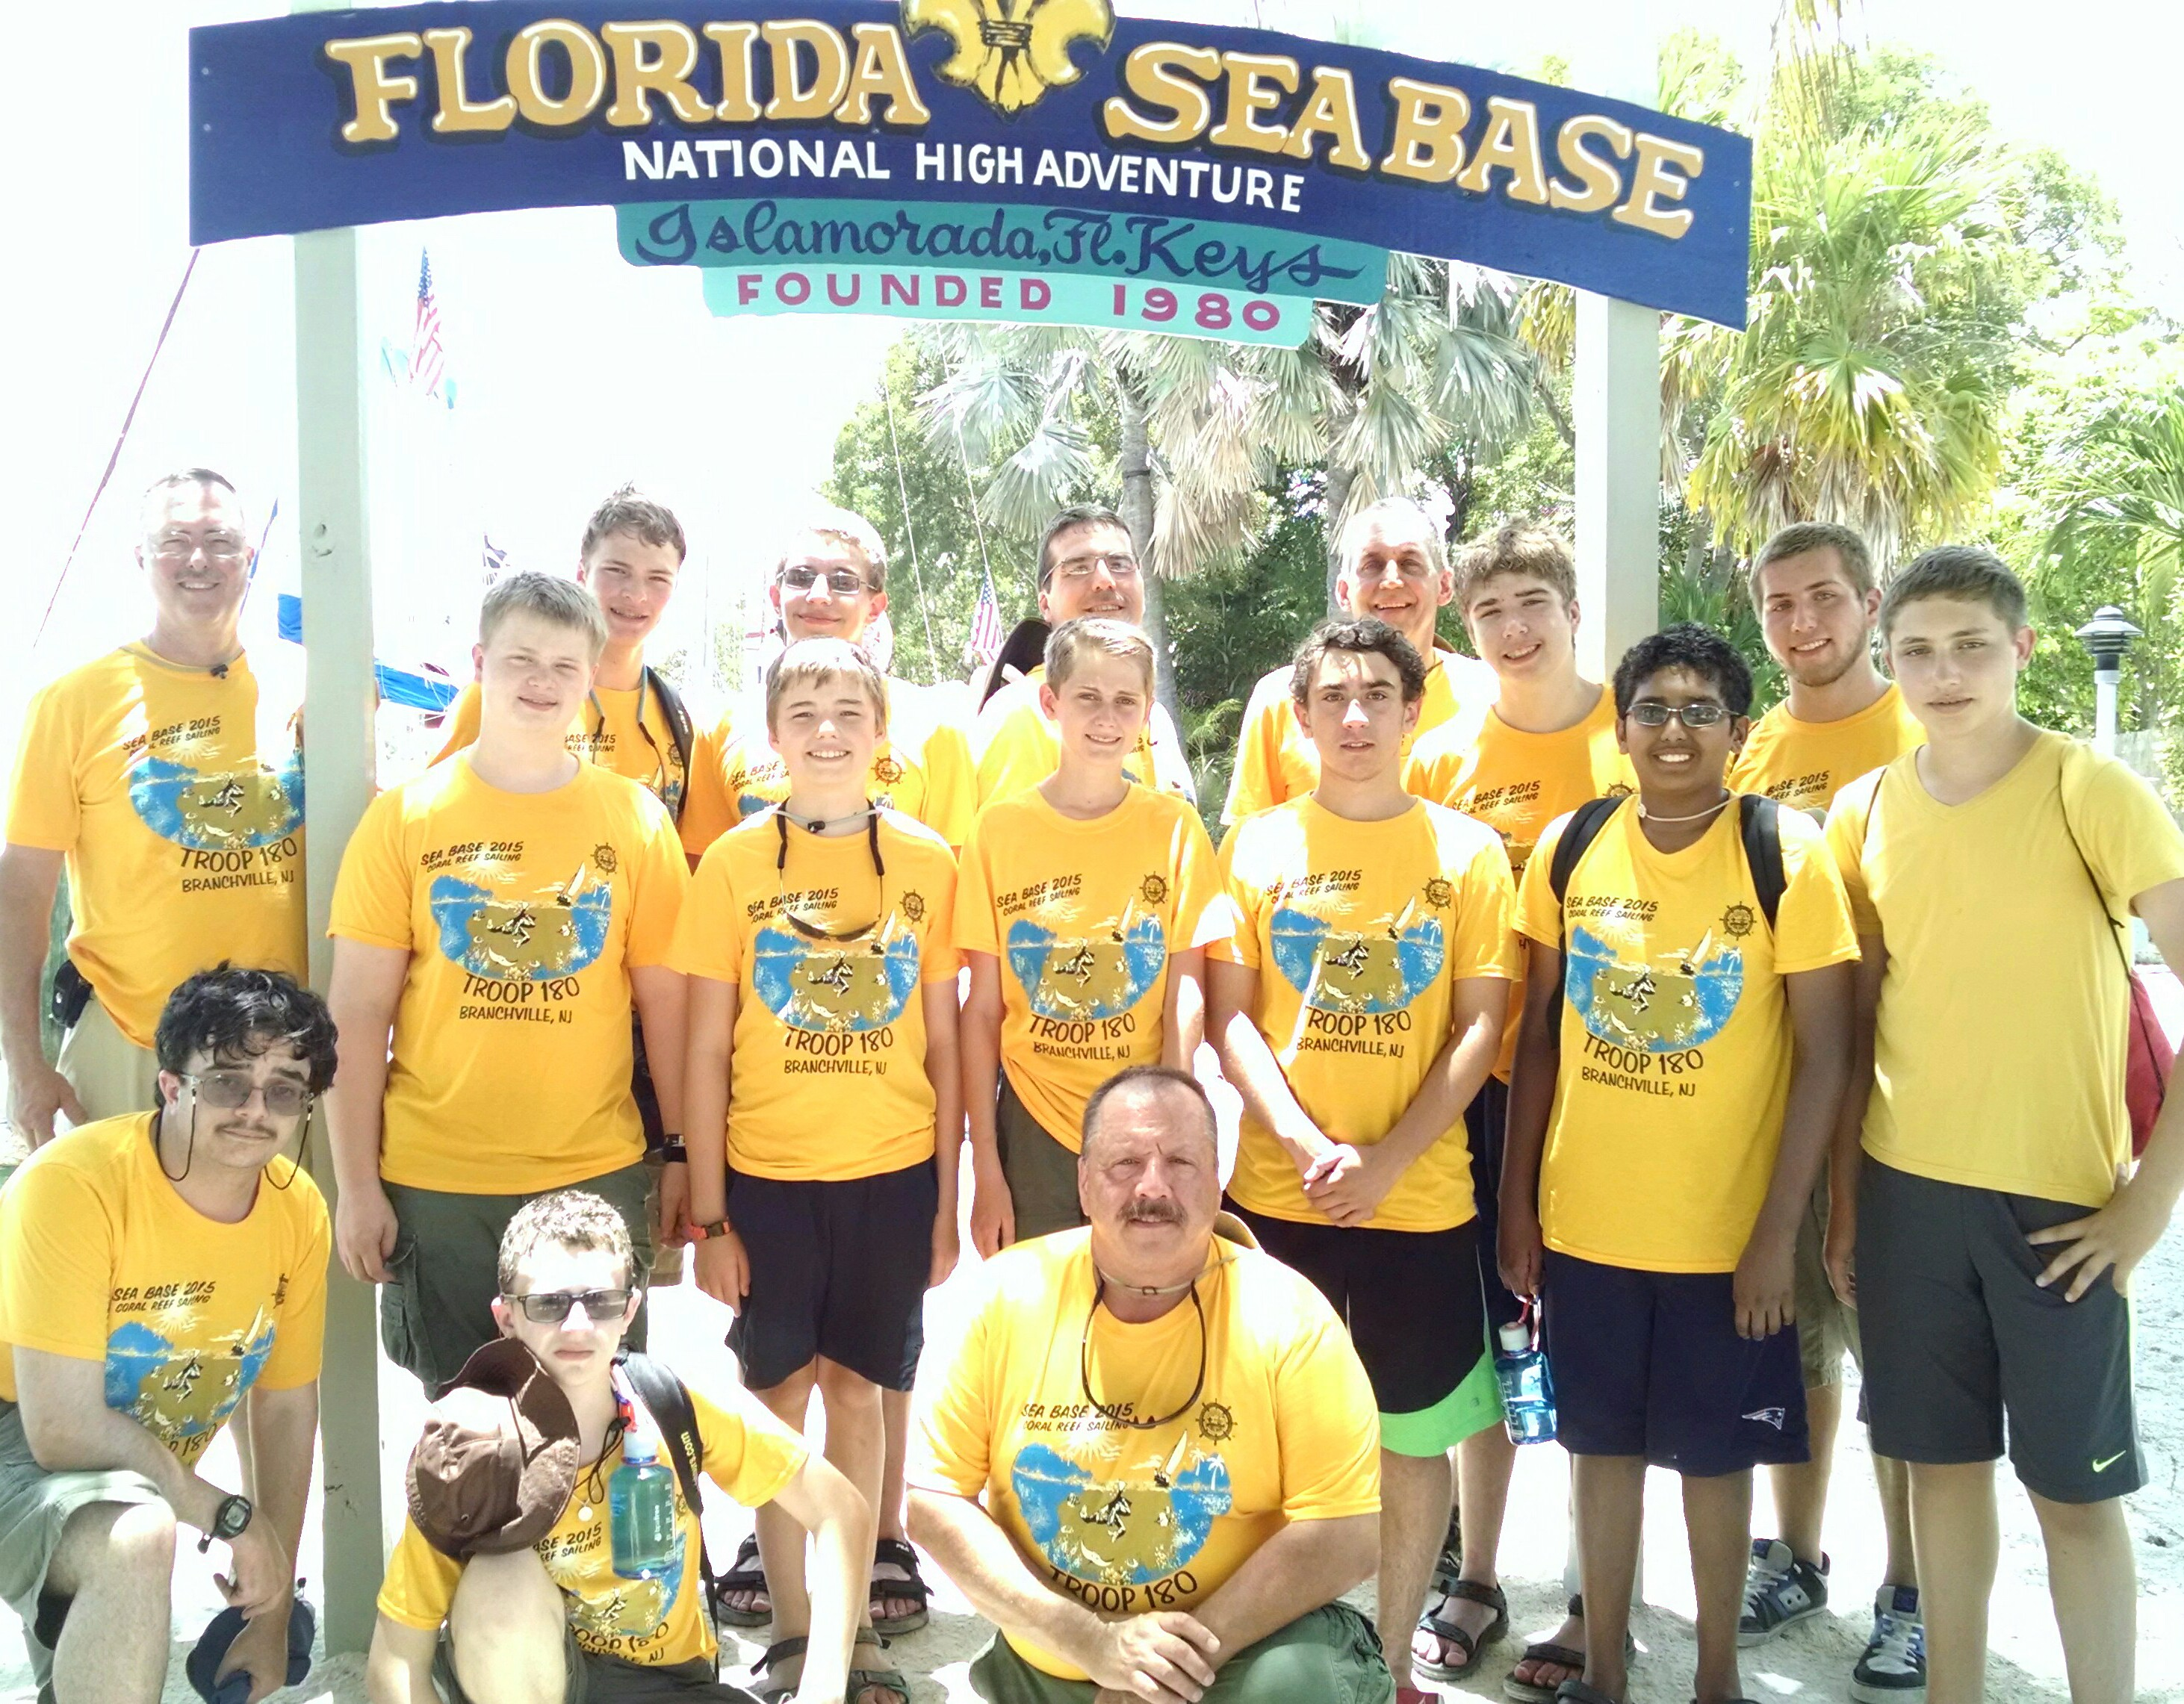 Troop 180 is shown wearing their gold Classic Fit Performance T-Shirts from Class B in front of the Florida Sea Base Camp